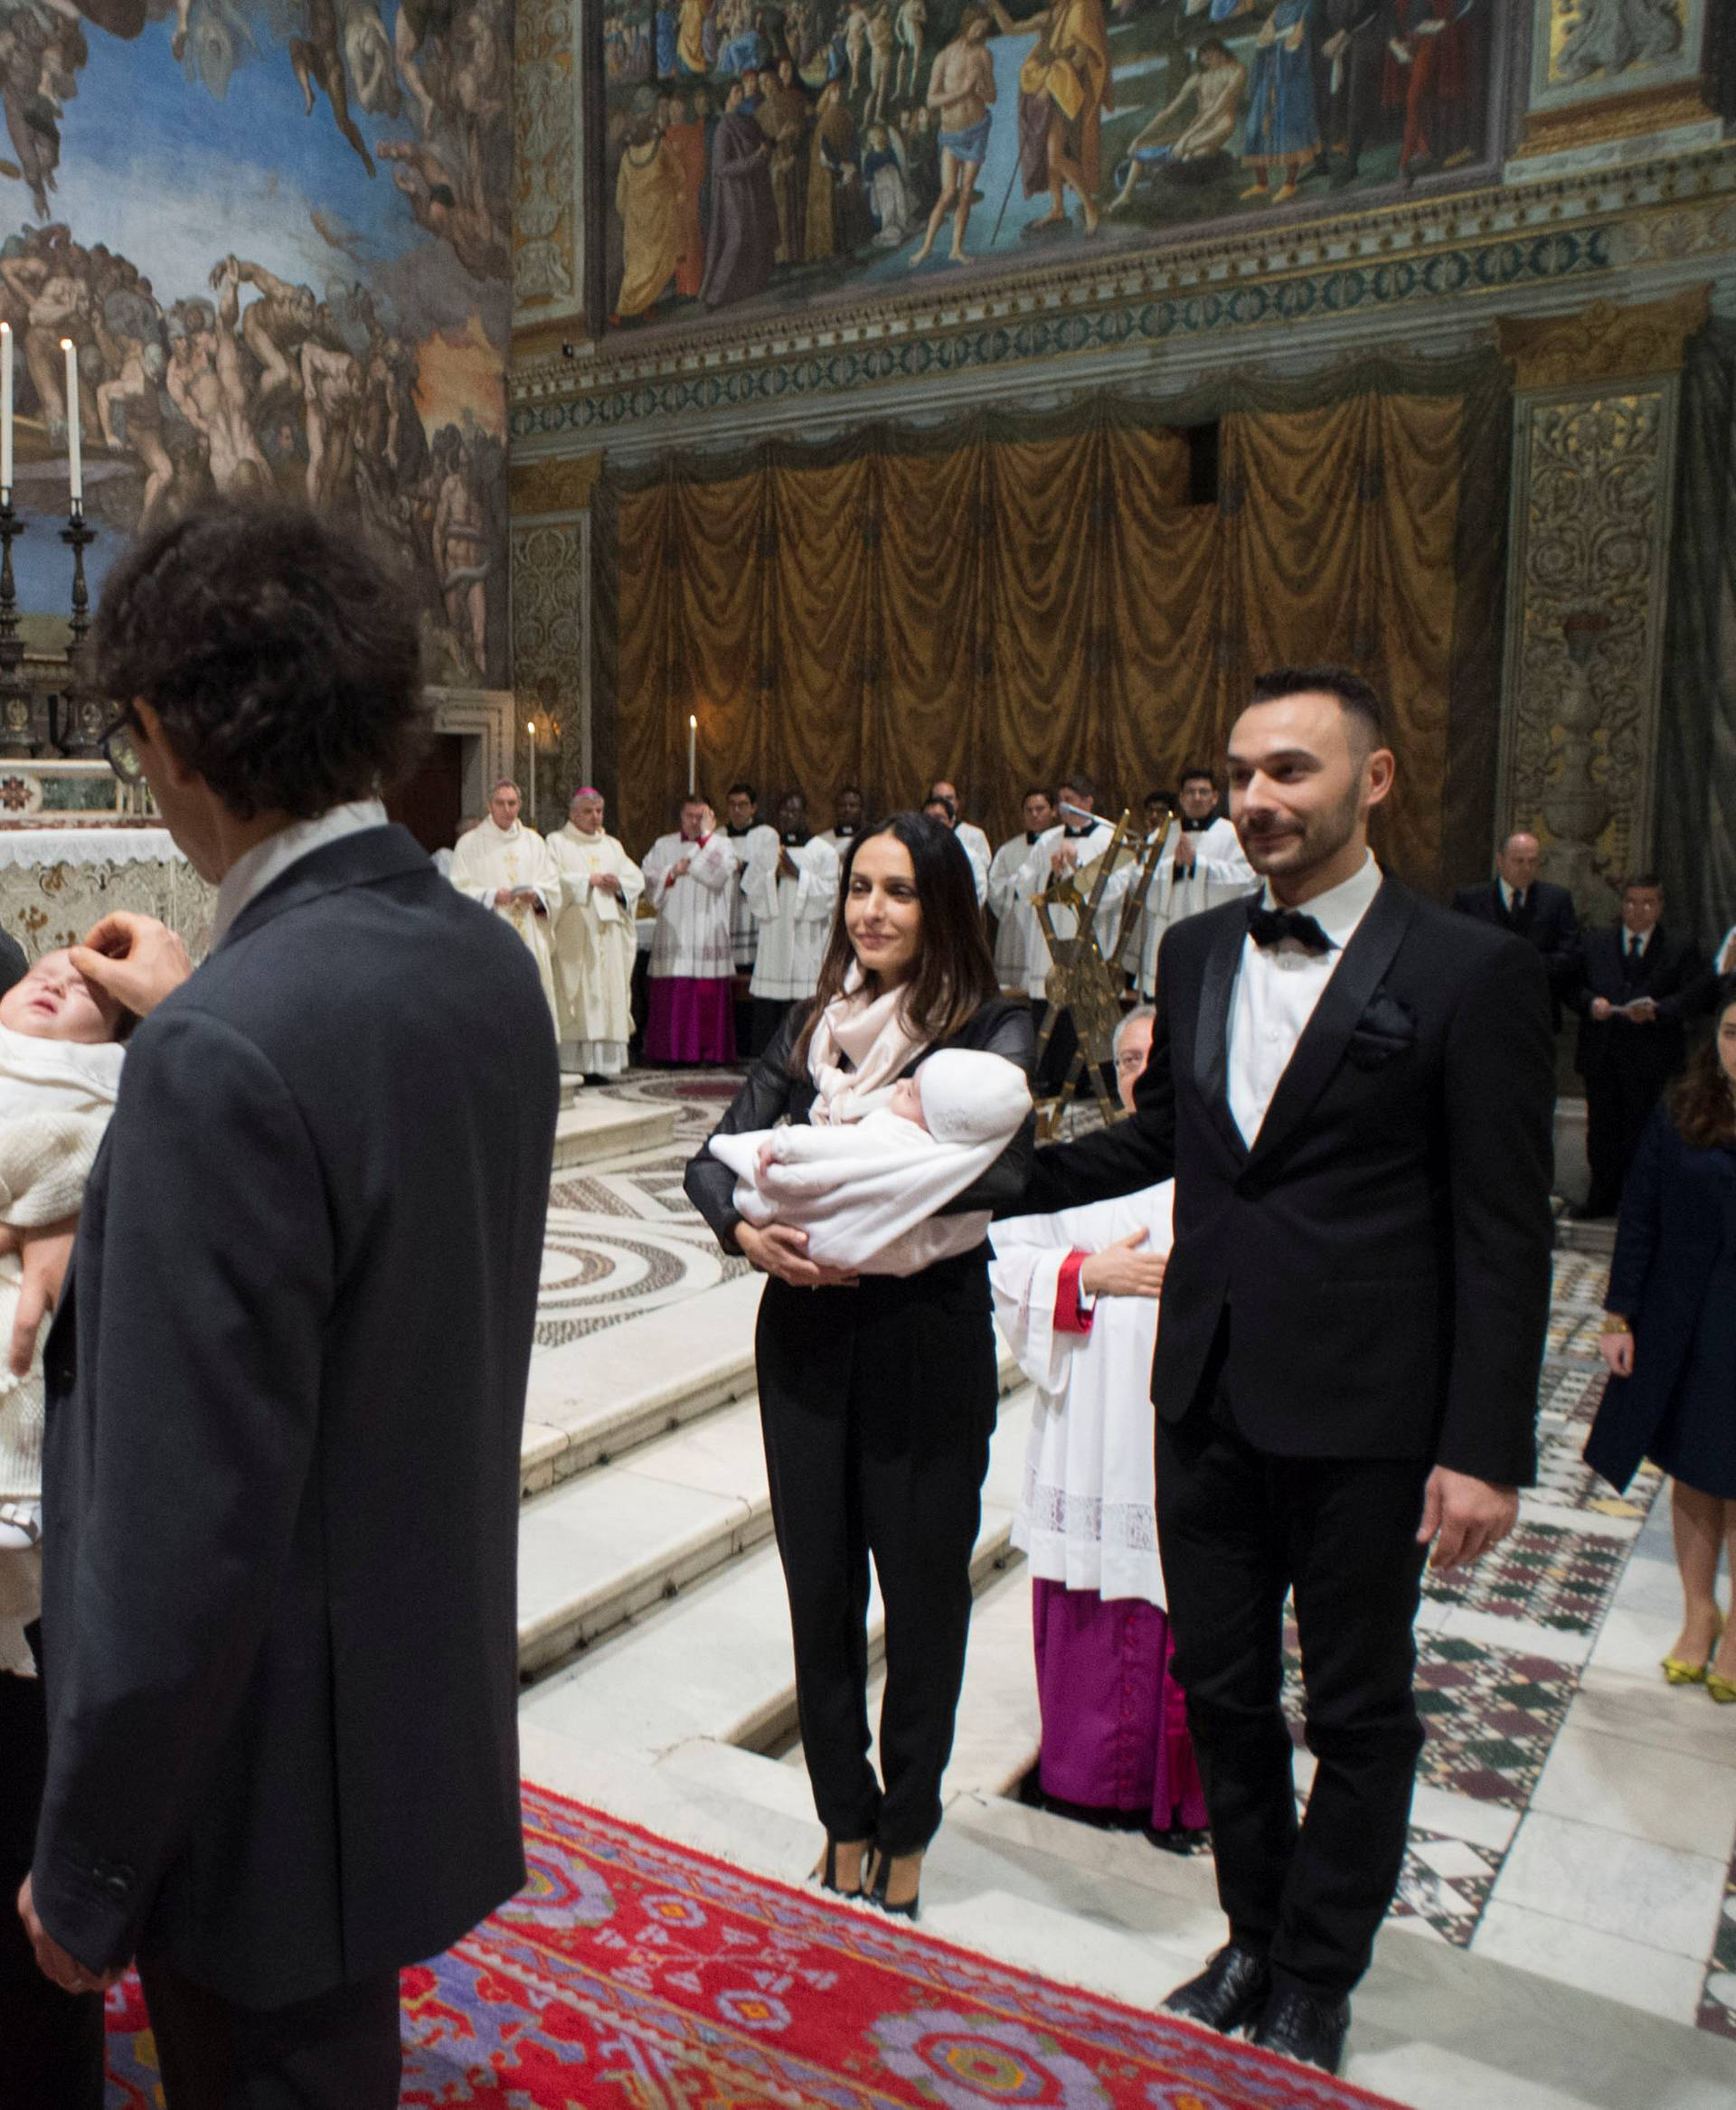 Pope Francis leads a ceremony of baptism during a solemn mass in the Sistine Chapel at the Vatican